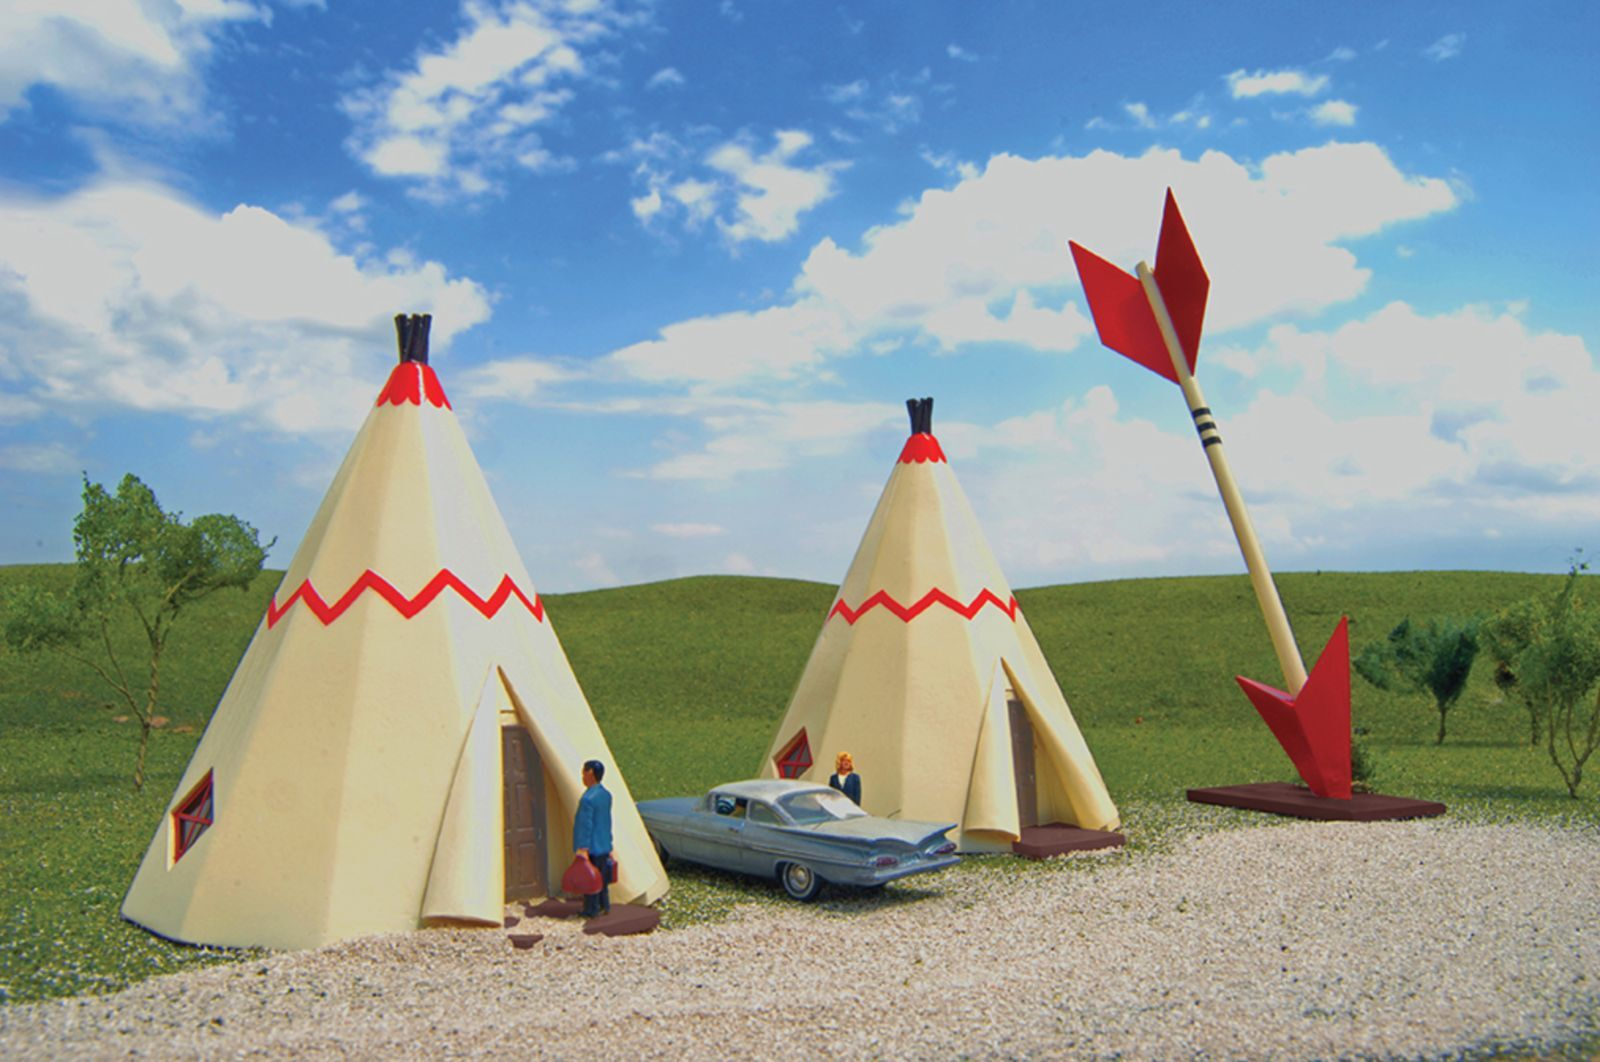 HO-Gauge - Bachmann - Teepee Hotel (2 teepees with arrow)